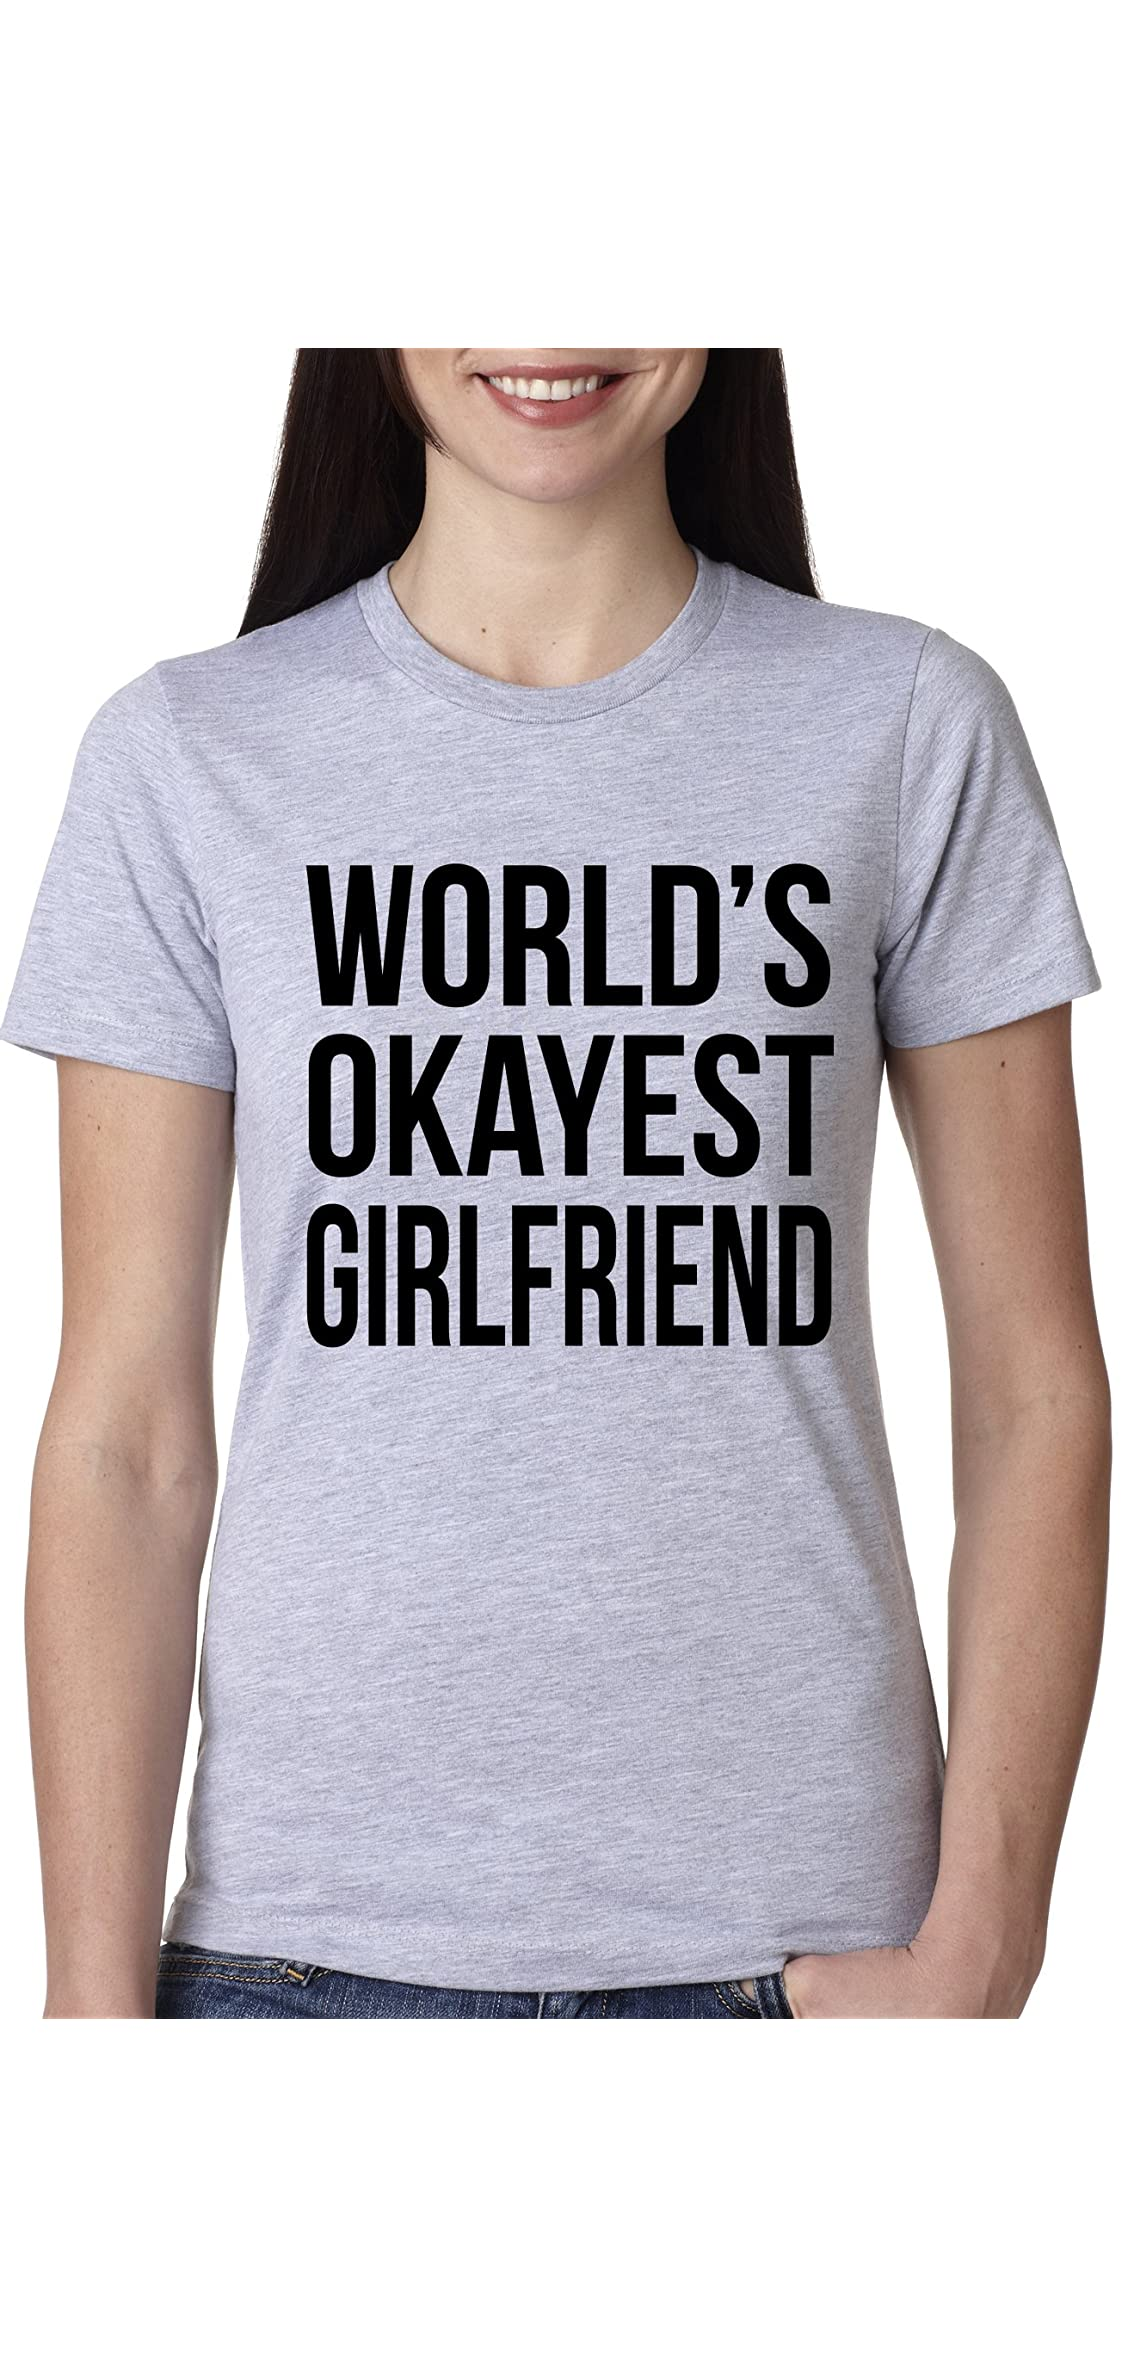 Women's World's Okayest Girlfriend T Shirt Funny Dating Tee For